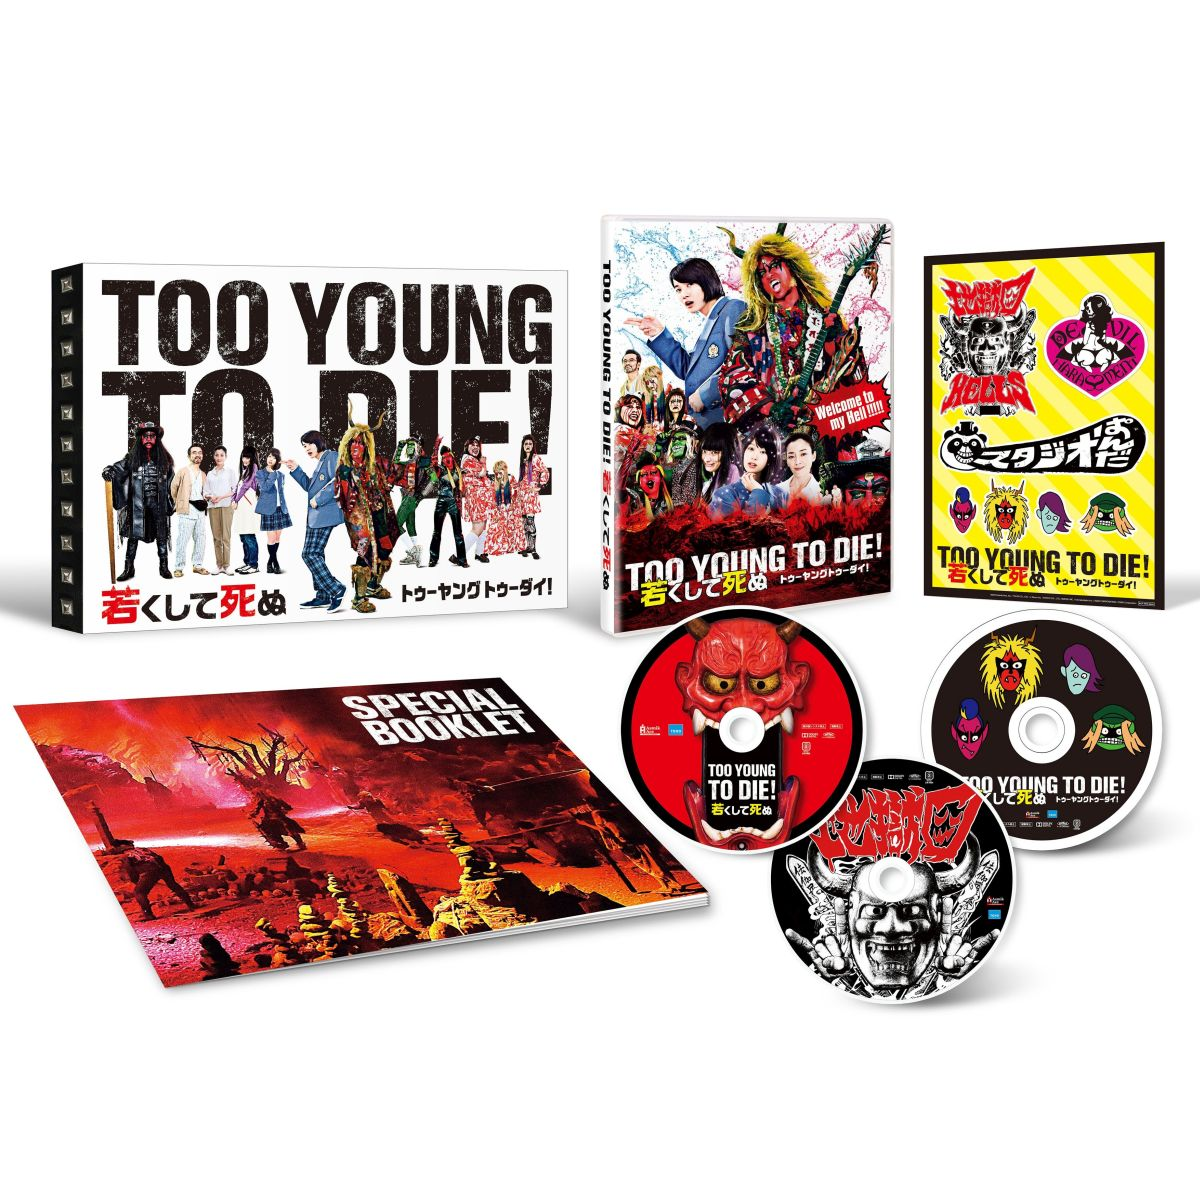 TOO YOUNG TO DIE! 若くして死ぬ 豪華版【Blu-ray】画像